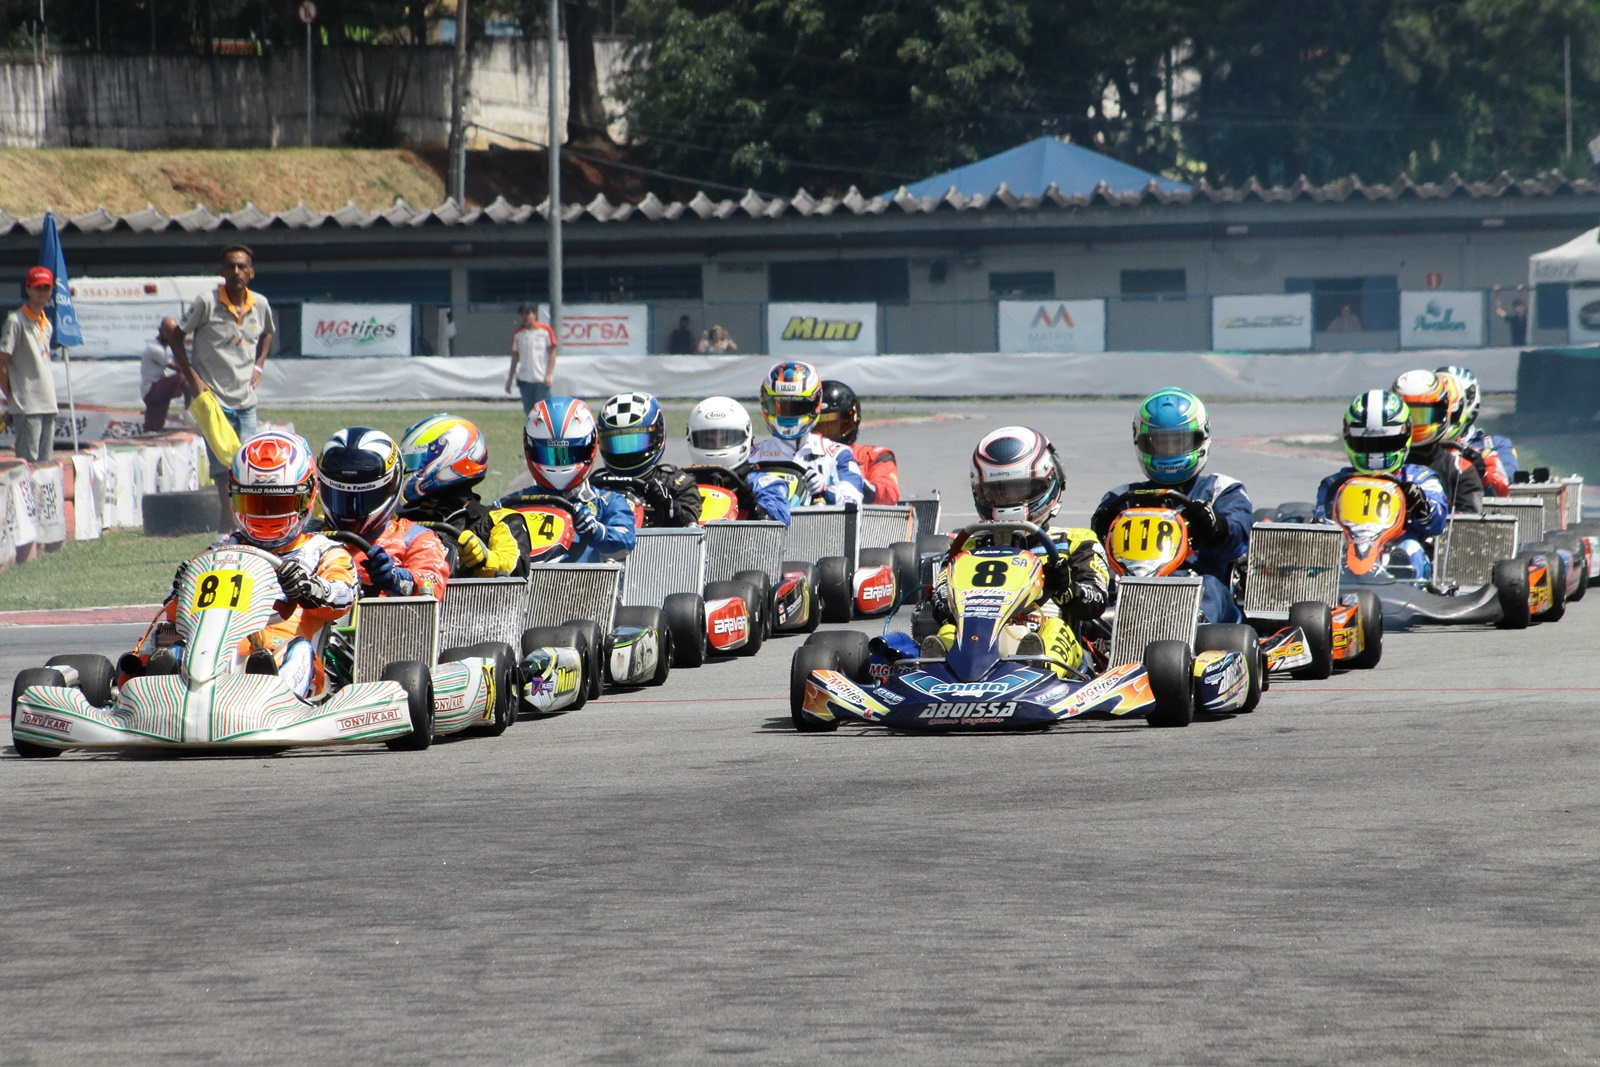 Photo of Kart – Contagem regressiva e grande expectativa para a 3ª etapa da Copa Interlagos de Kart